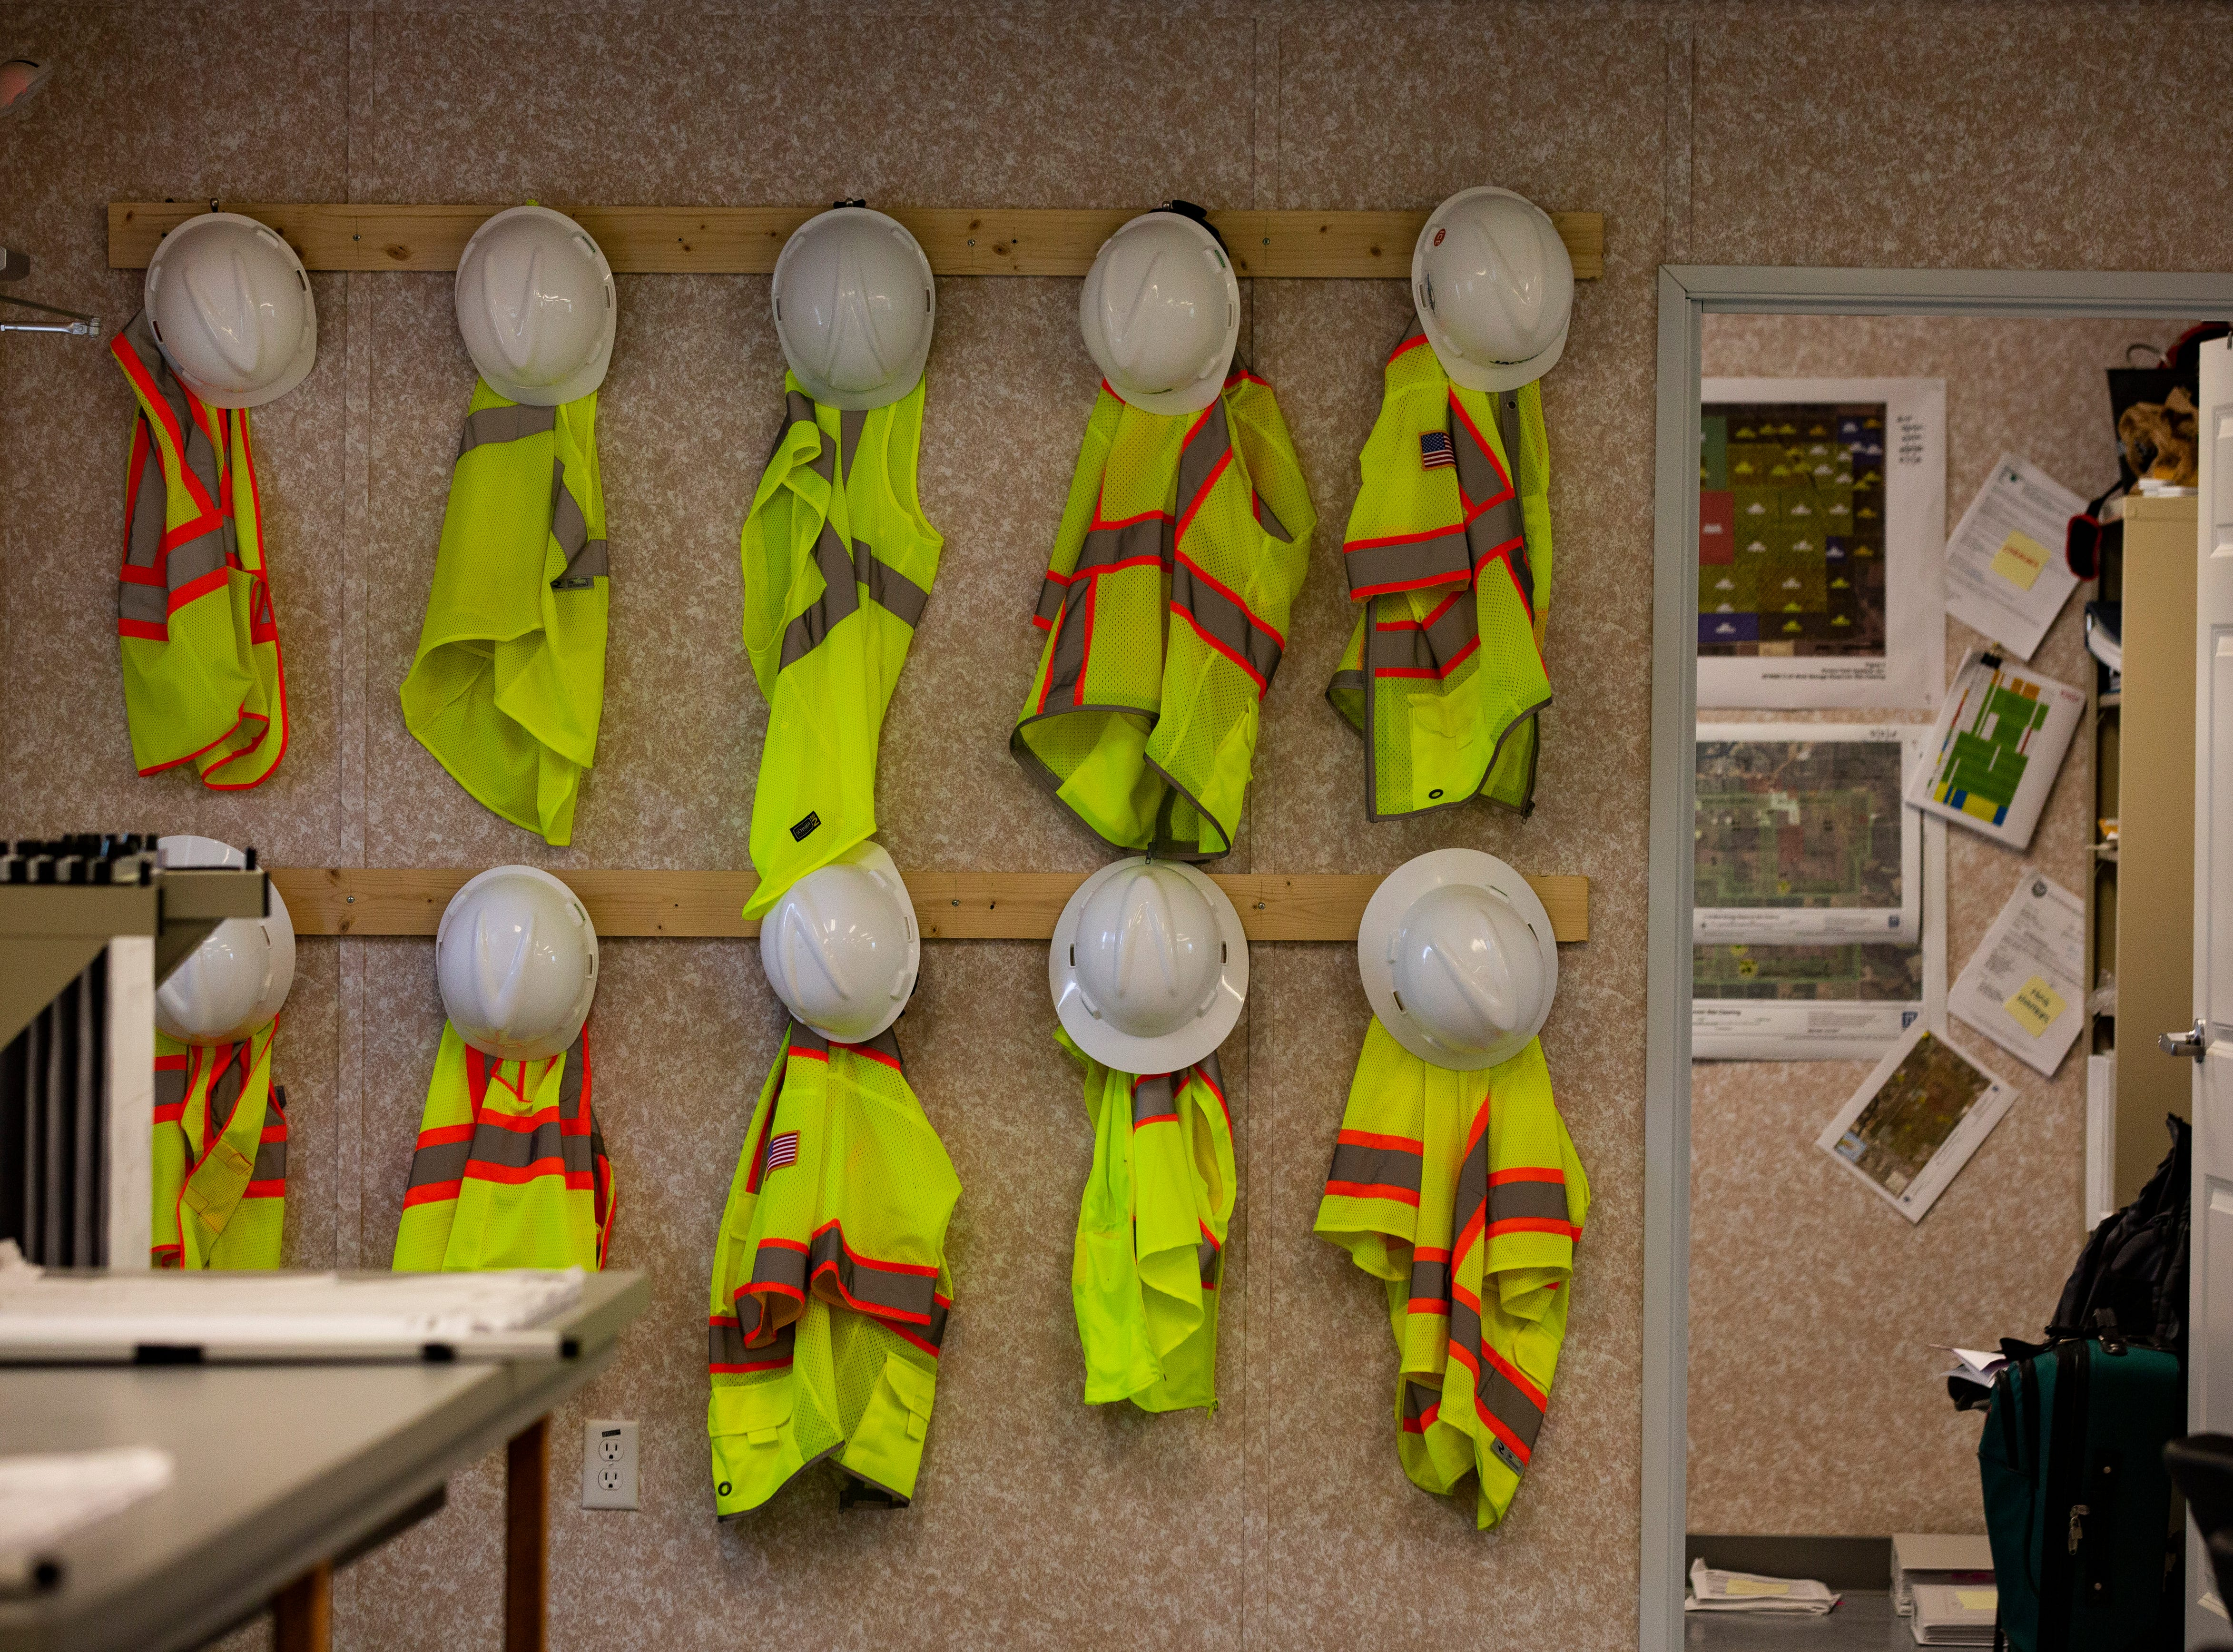 Neon vests and hard hats hang at the temporary work space of the Caloosahatchee Reservoir project in Hendry County. The project is also known as C-43 West Basin Storage Reservoir.